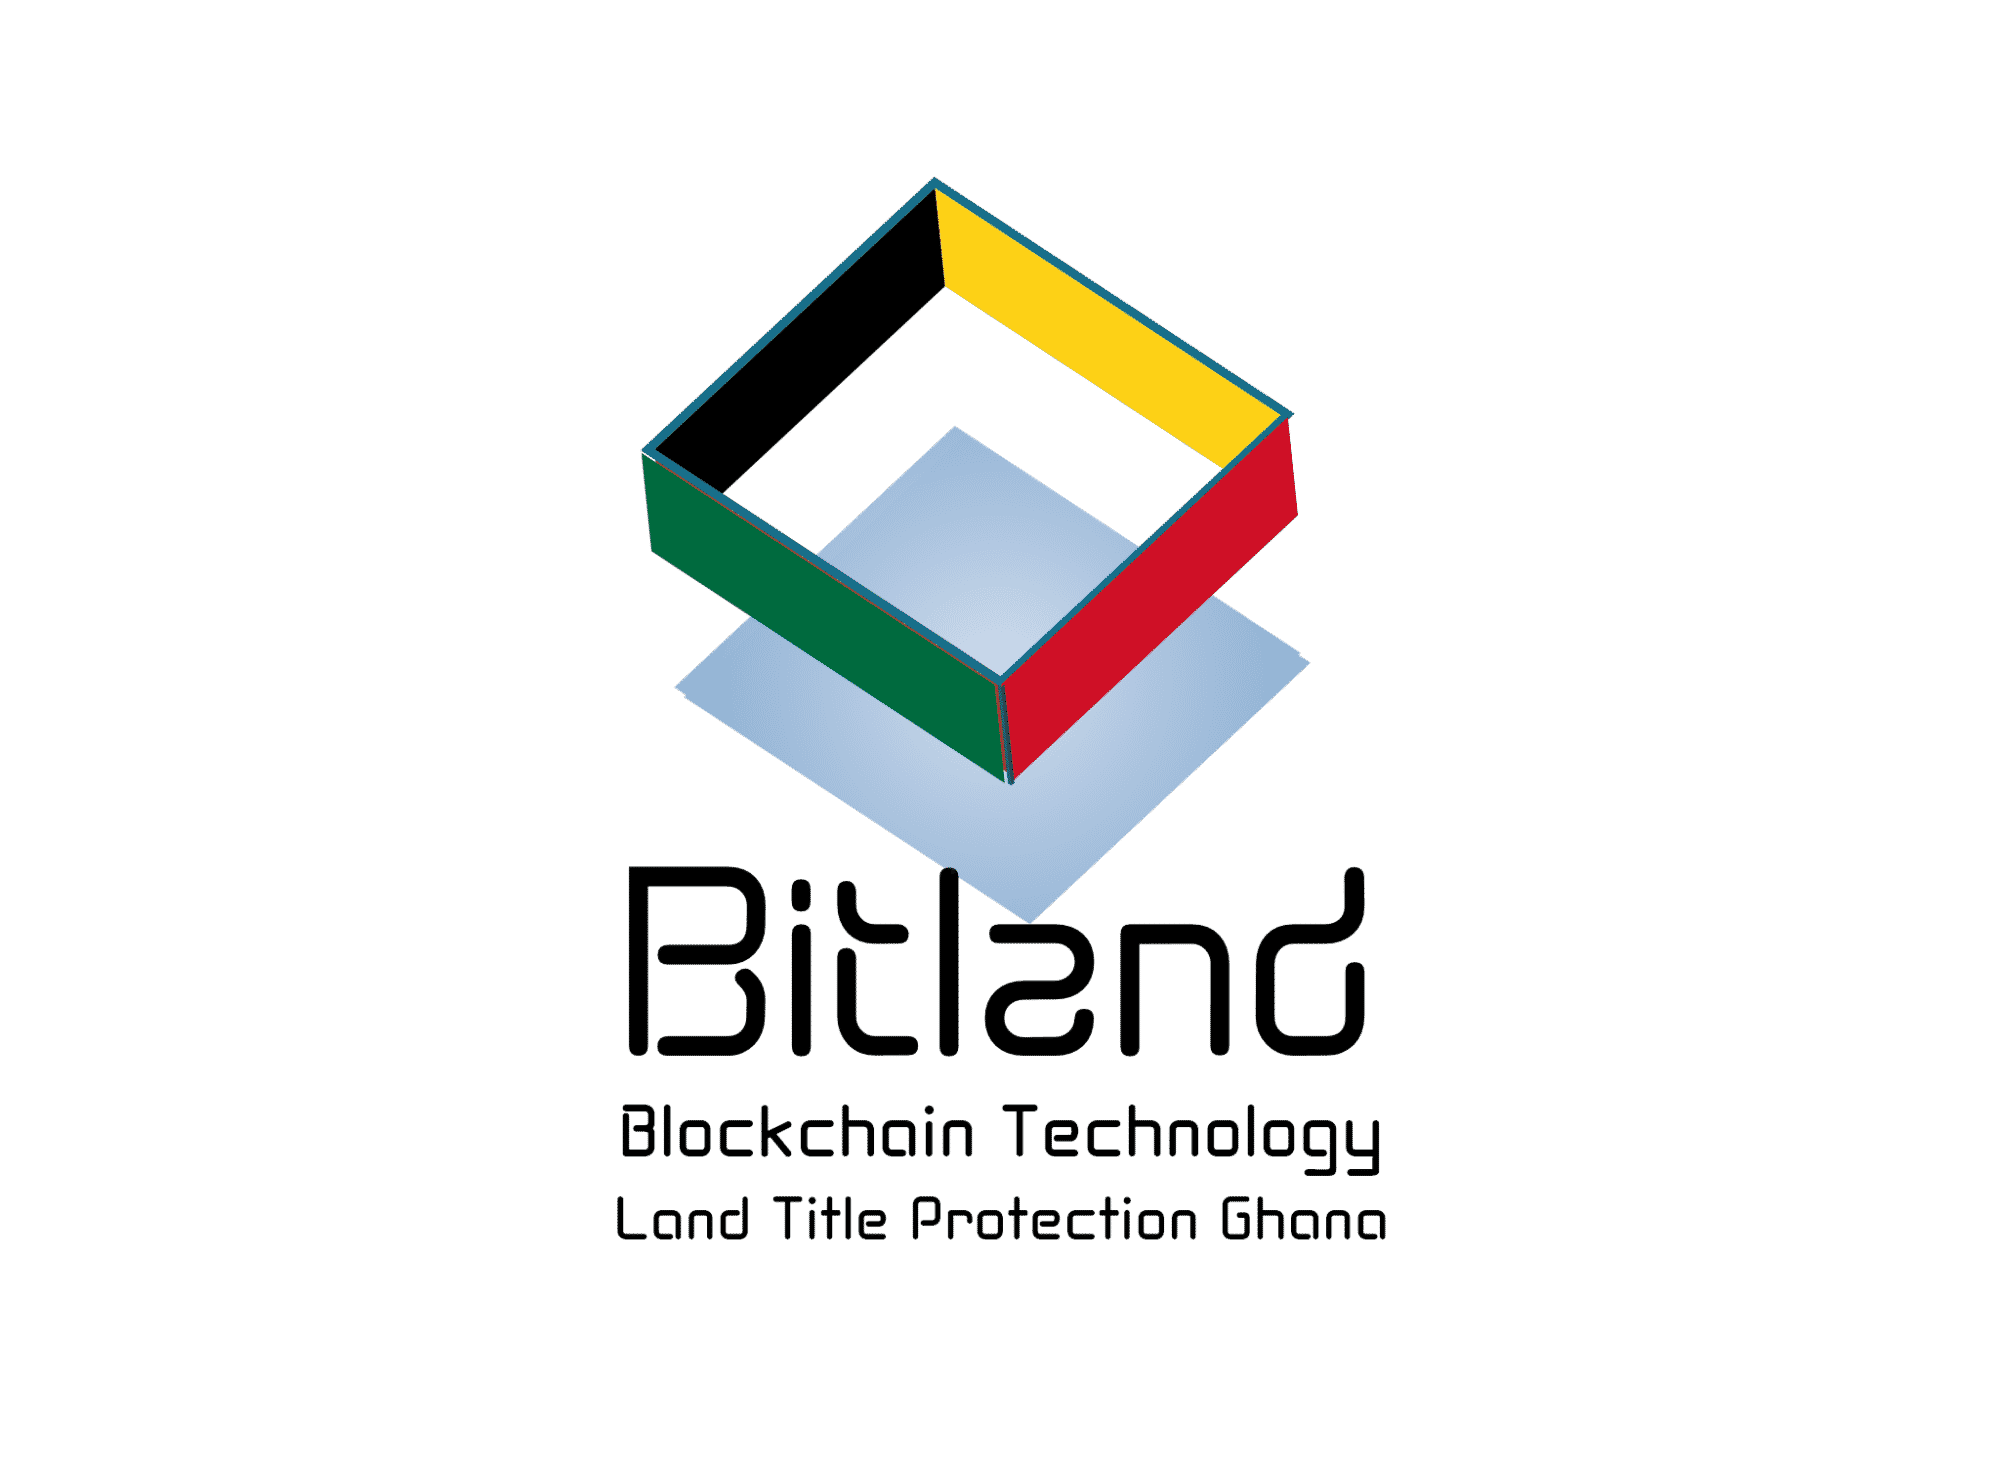 Bitland in 50 Most Genius Companies by Time Magazine